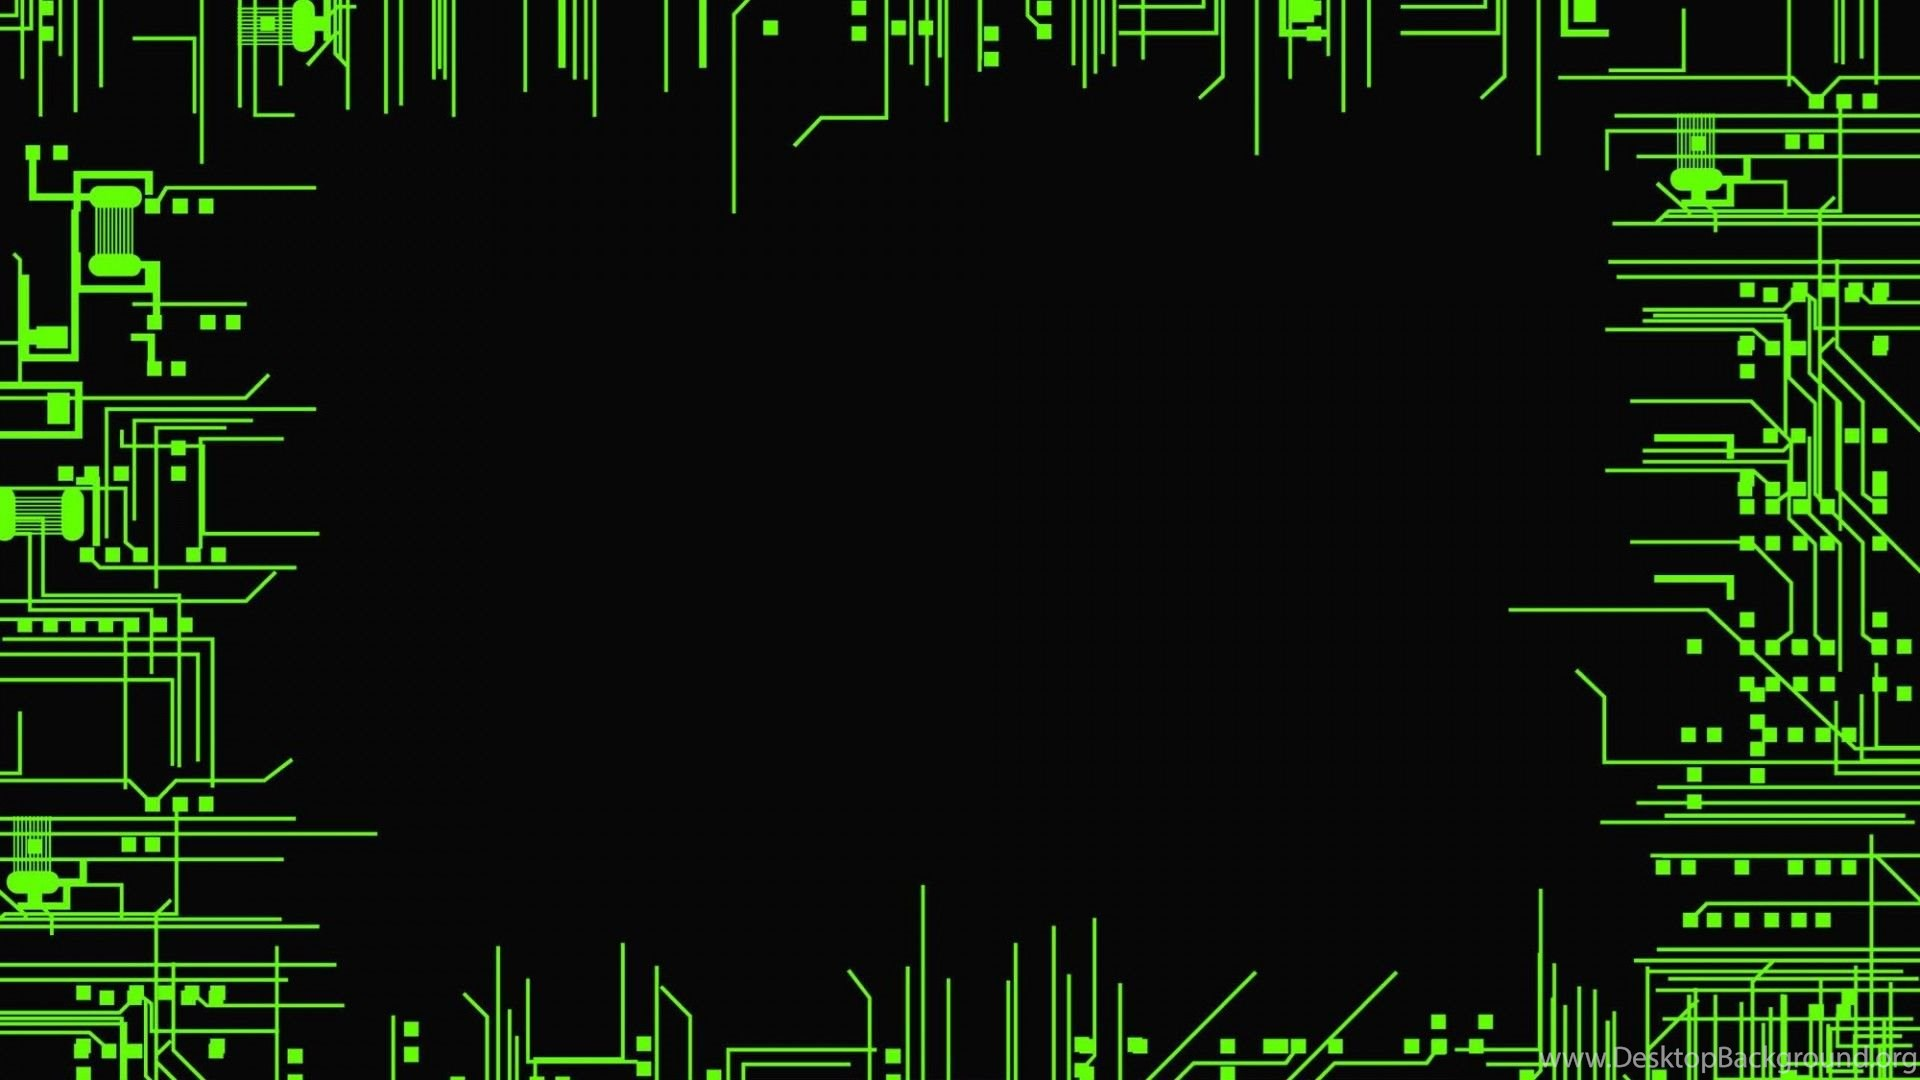 Electronics Abstract Green Folder 1920x1080 Hd Wallpapers And Desktop Background